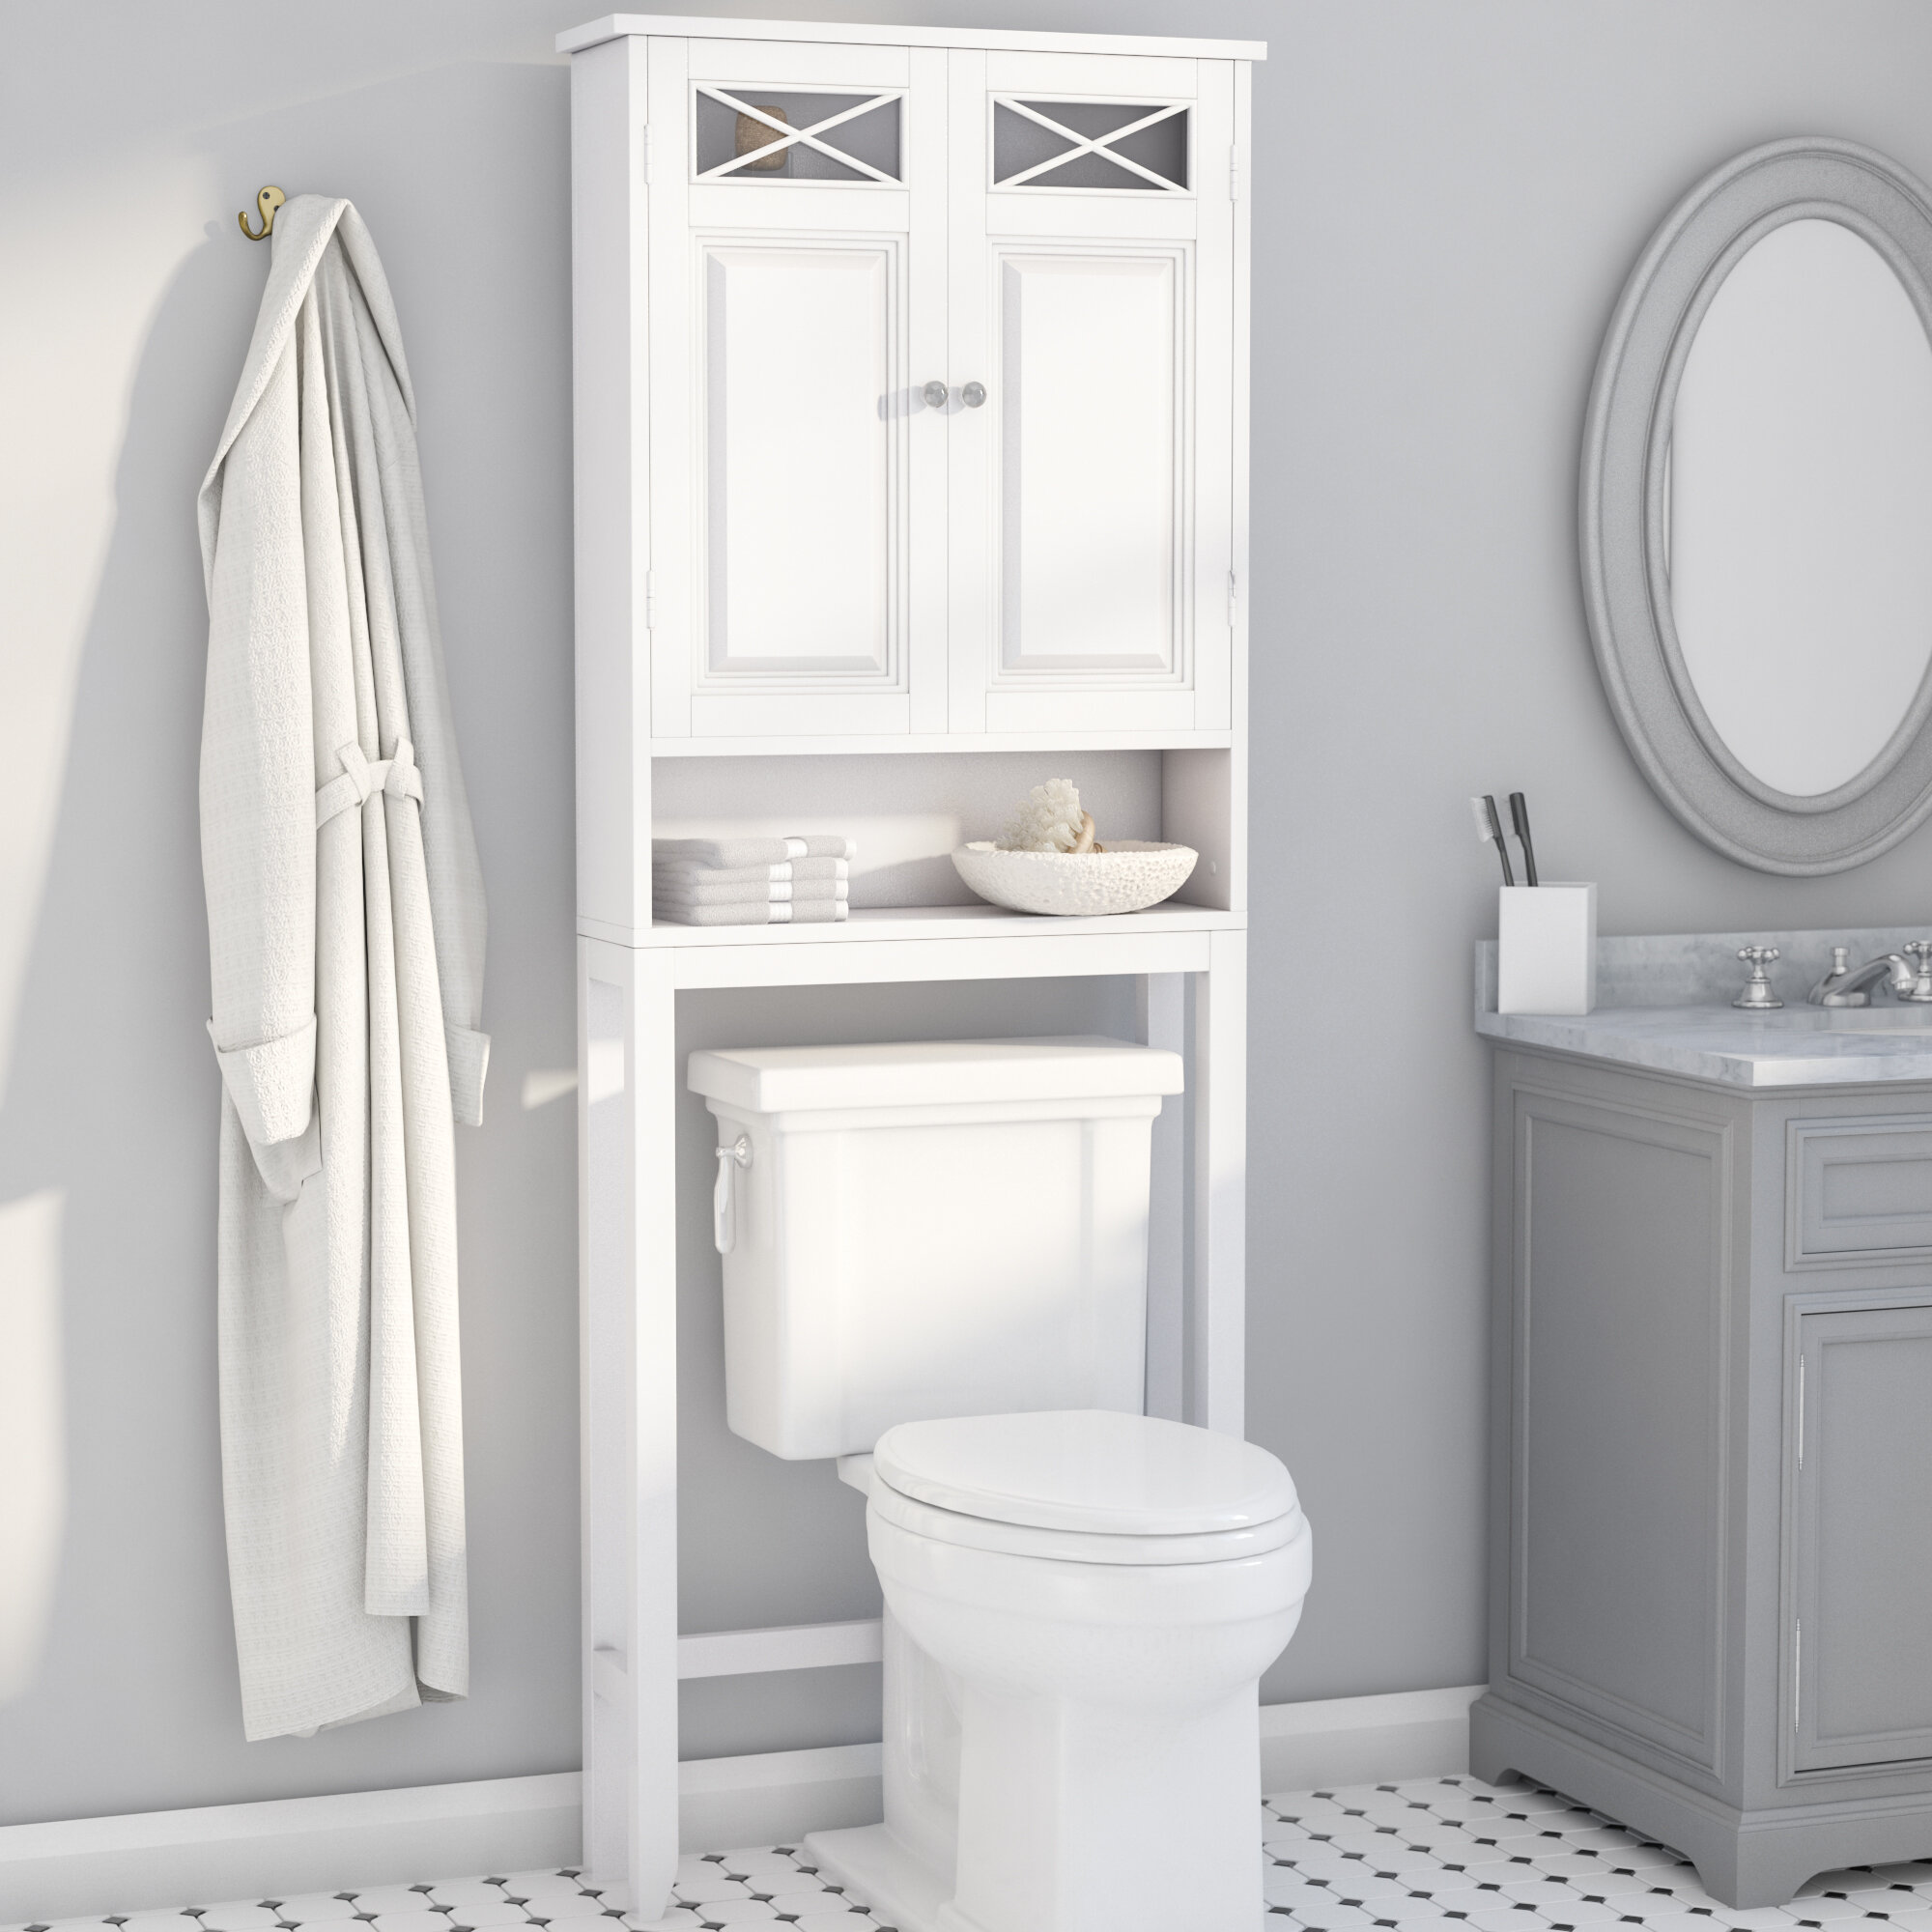 darby home co coddington 25 w x 68 h over the toilet storage reviews wayfair. Black Bedroom Furniture Sets. Home Design Ideas